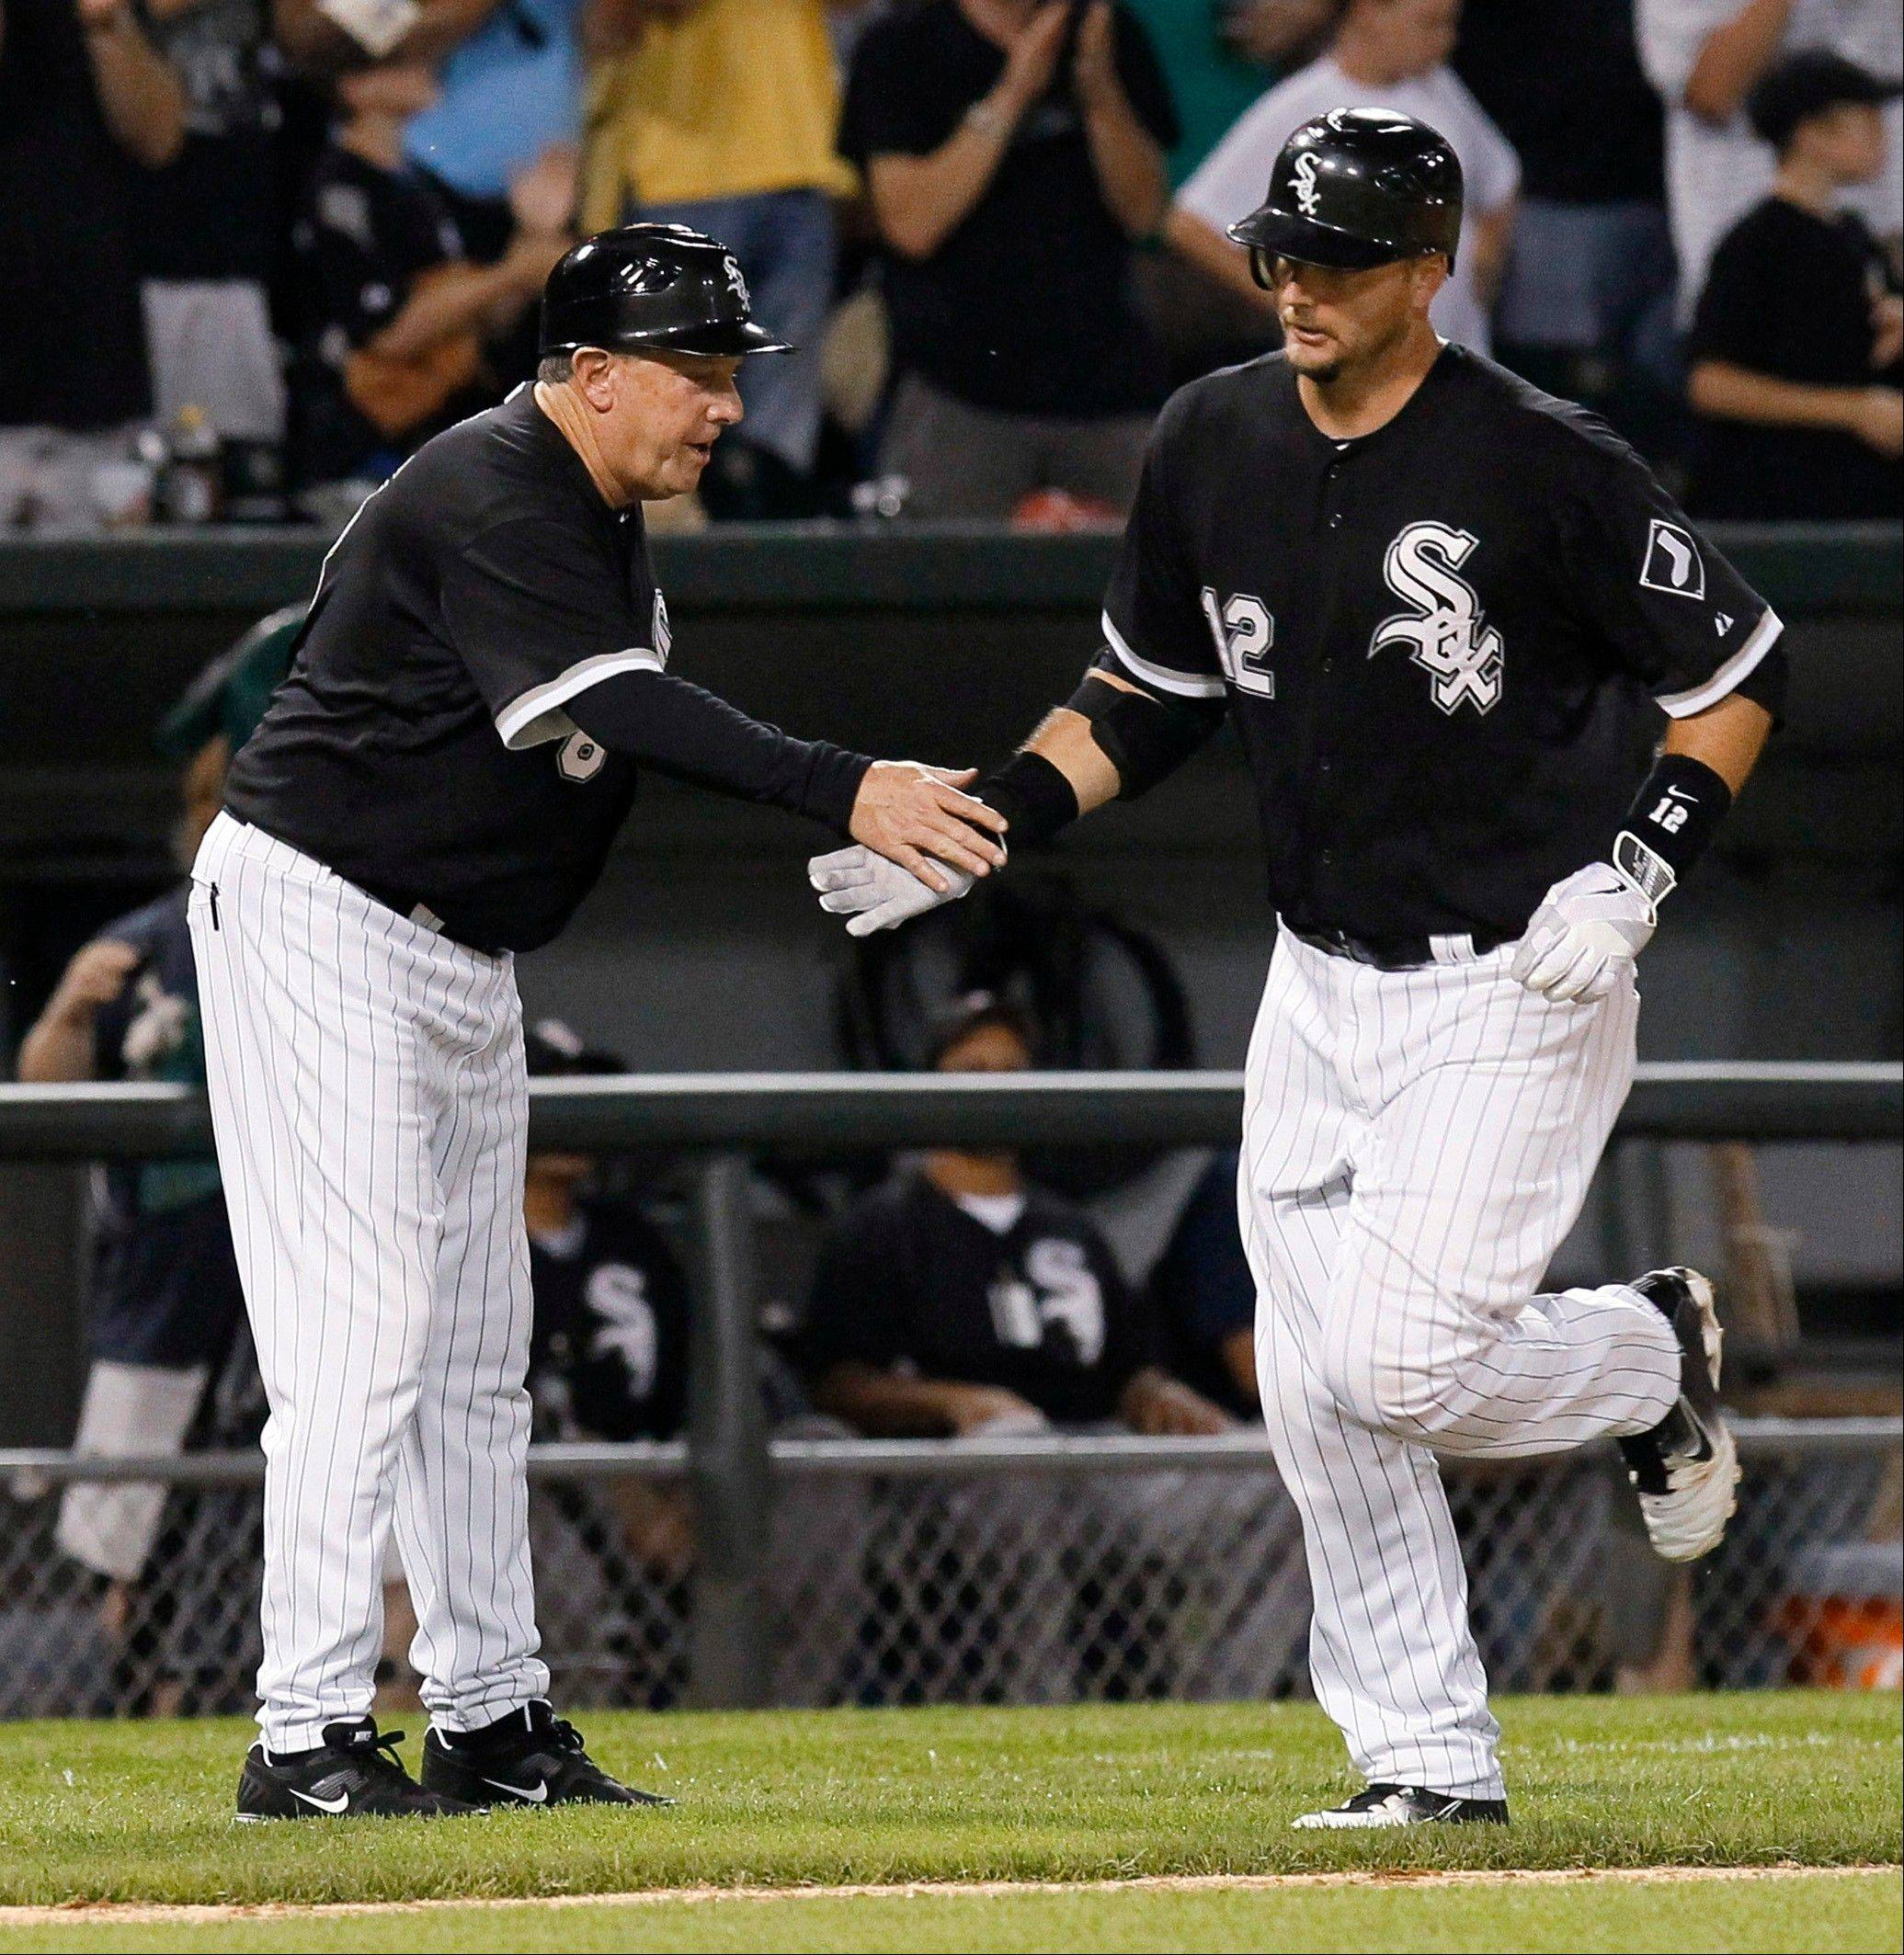 White Sox third base coach Jeff Cox, left, greets A.J. Pierzynski after his home run off Detroit Tigers relief pitcher Chance Ruffin during Monday's sixth inning at U.S. Cellular Field.